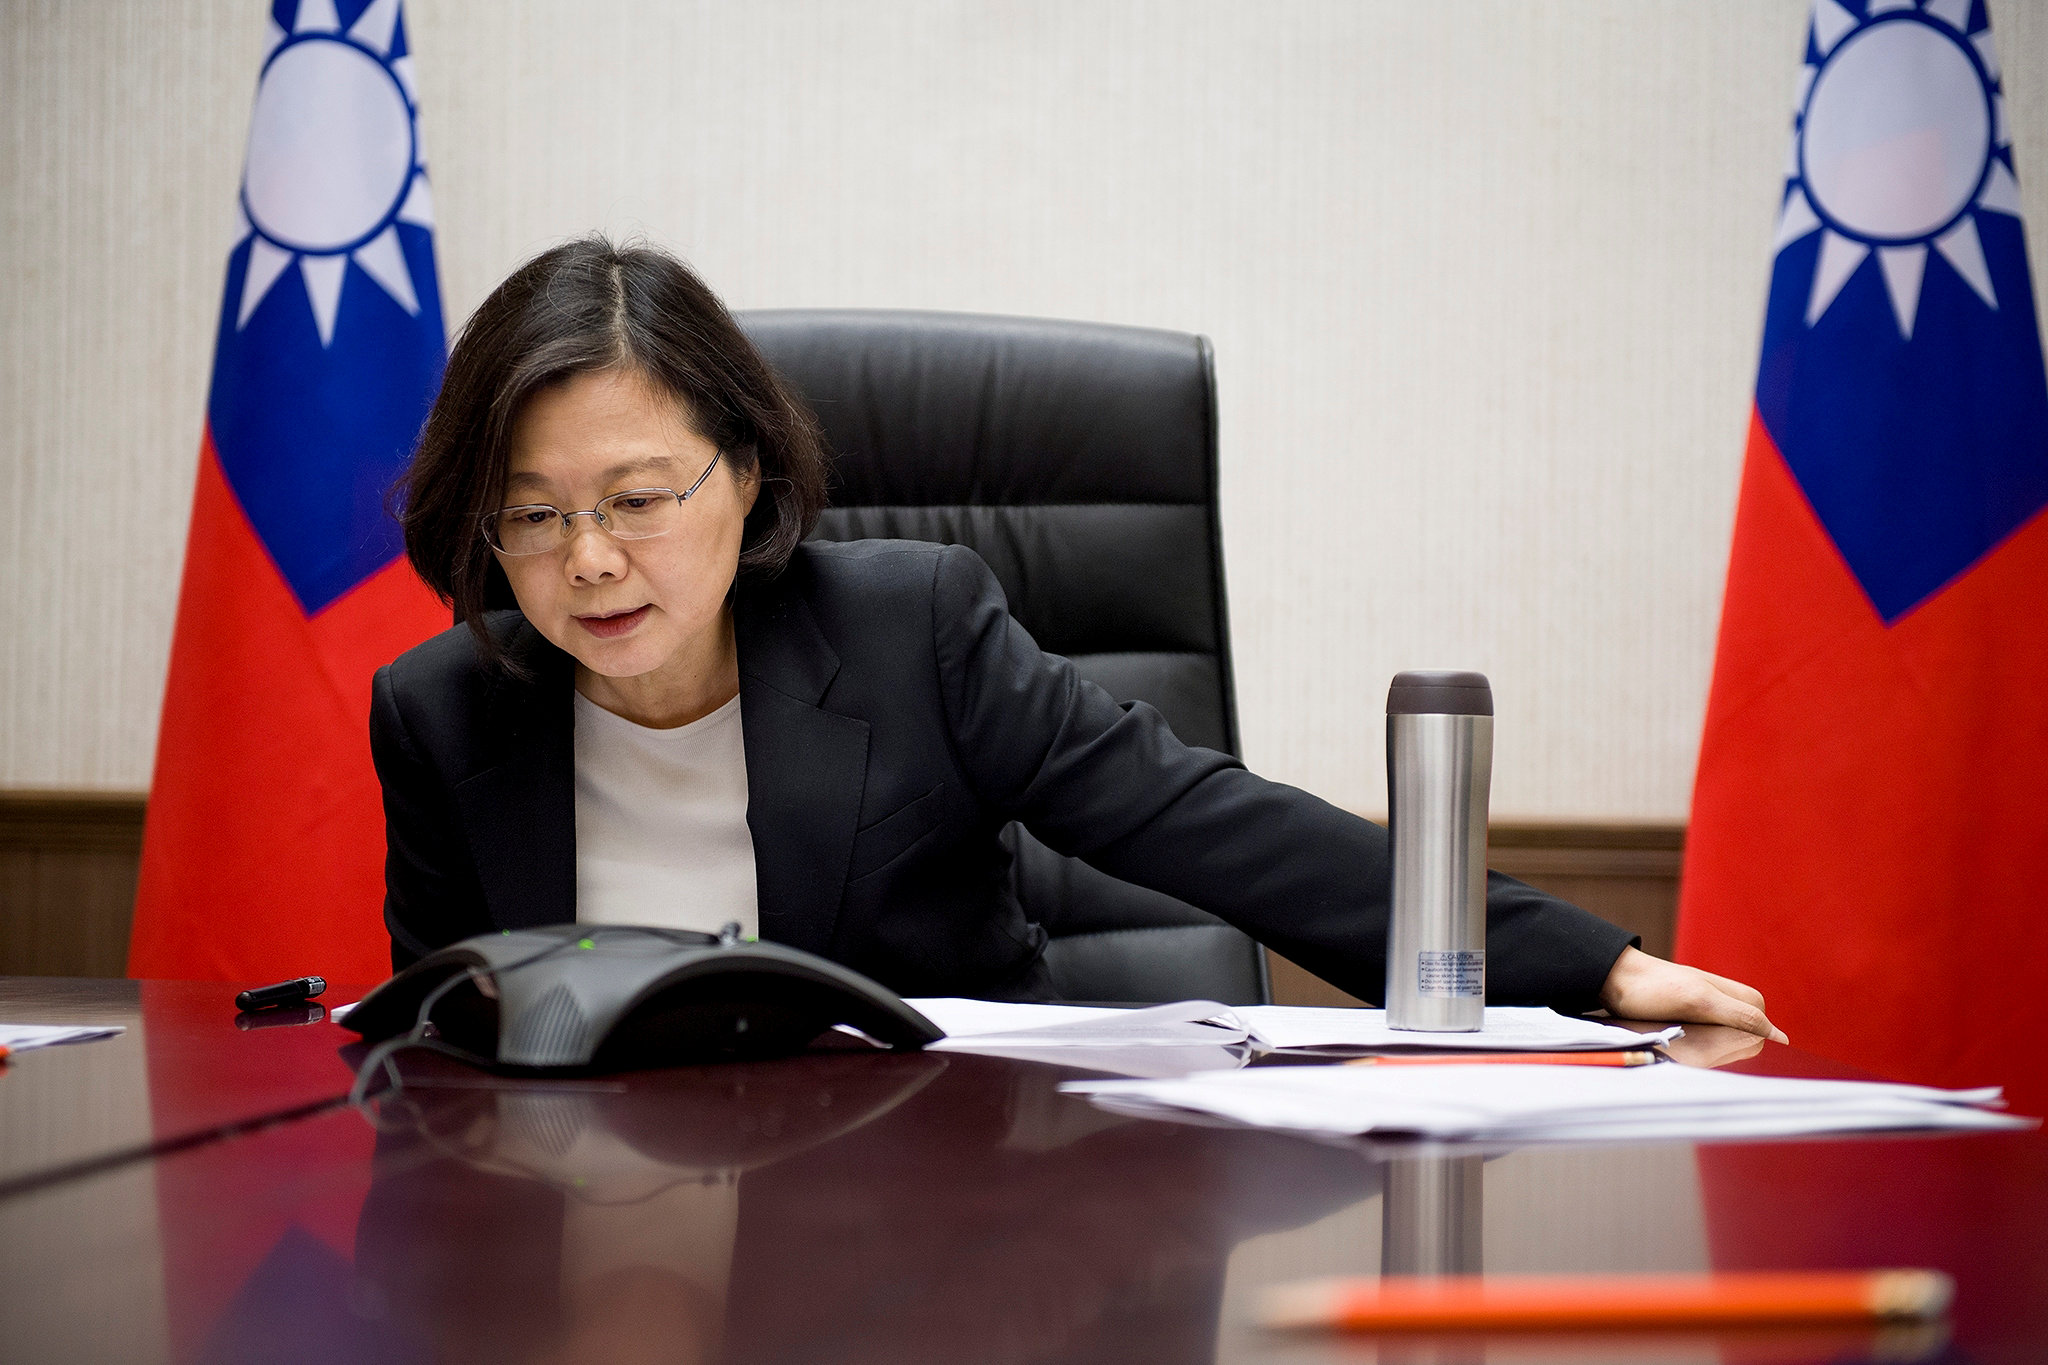 Taiwan's President Tsai Ing-wen speaks on the phone with U.S. president-elect Donald Trump at her office in Taipei, Taiwan, in this handout photo made available December 3, 2016.   Taiwan Presidential Office/Handout via REUTERS/File Photo      ATTENTION EDITORS - THIS IMAGE WAS PROVIDED BY A THIRD PARTY. EDITORIAL USE ONLY. NO RESALES. NO ARCHIVE. TAIWAN OUT.